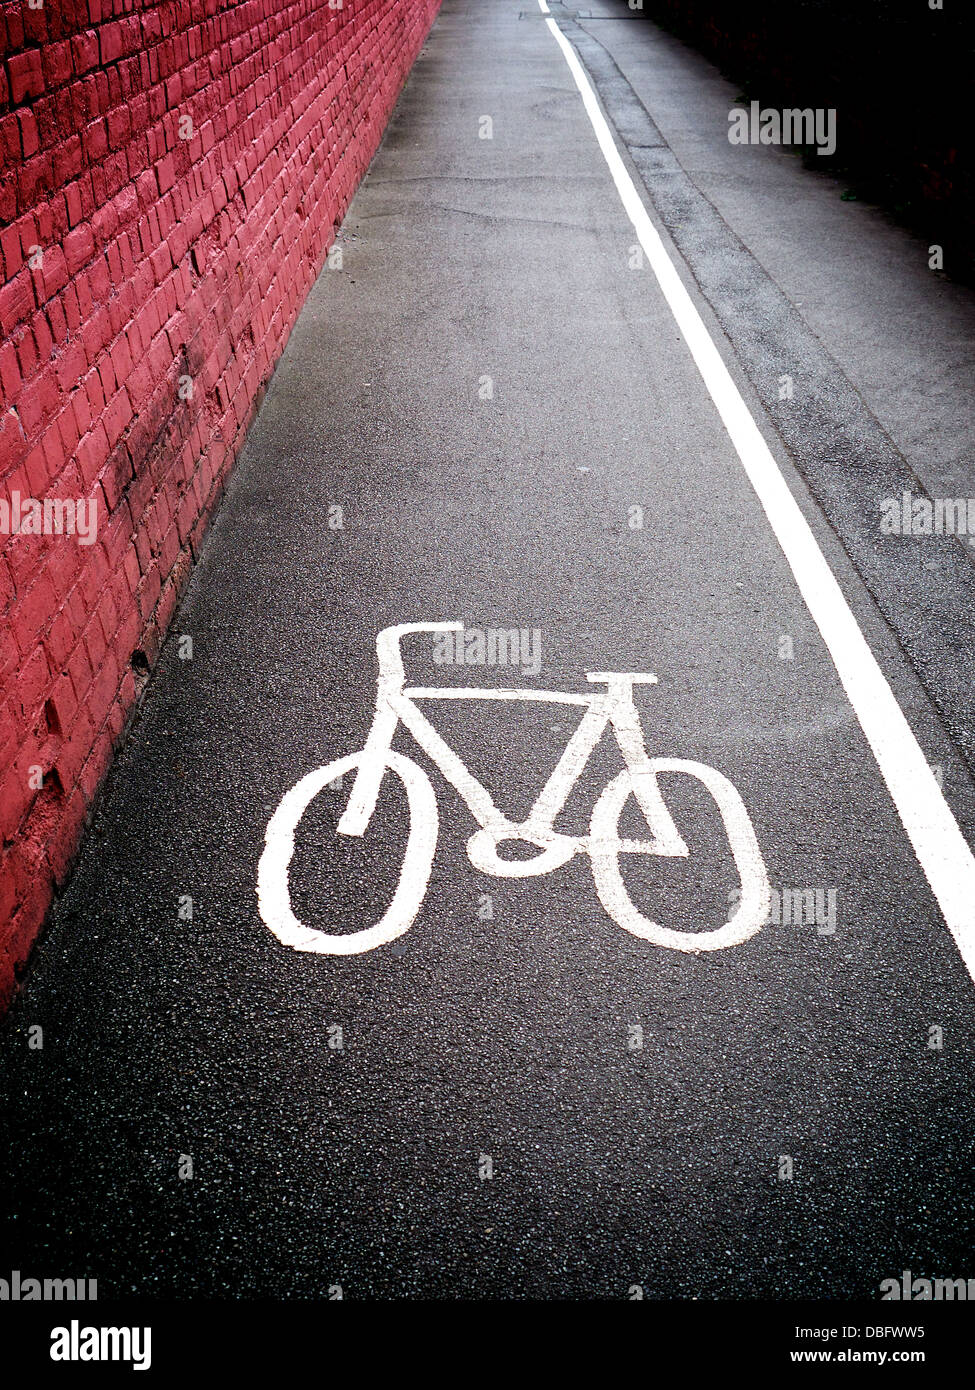 Cycle path symbol on a British sidewalk pavement with a solid white line separating the cycle path from the pedestrian - Stock Image